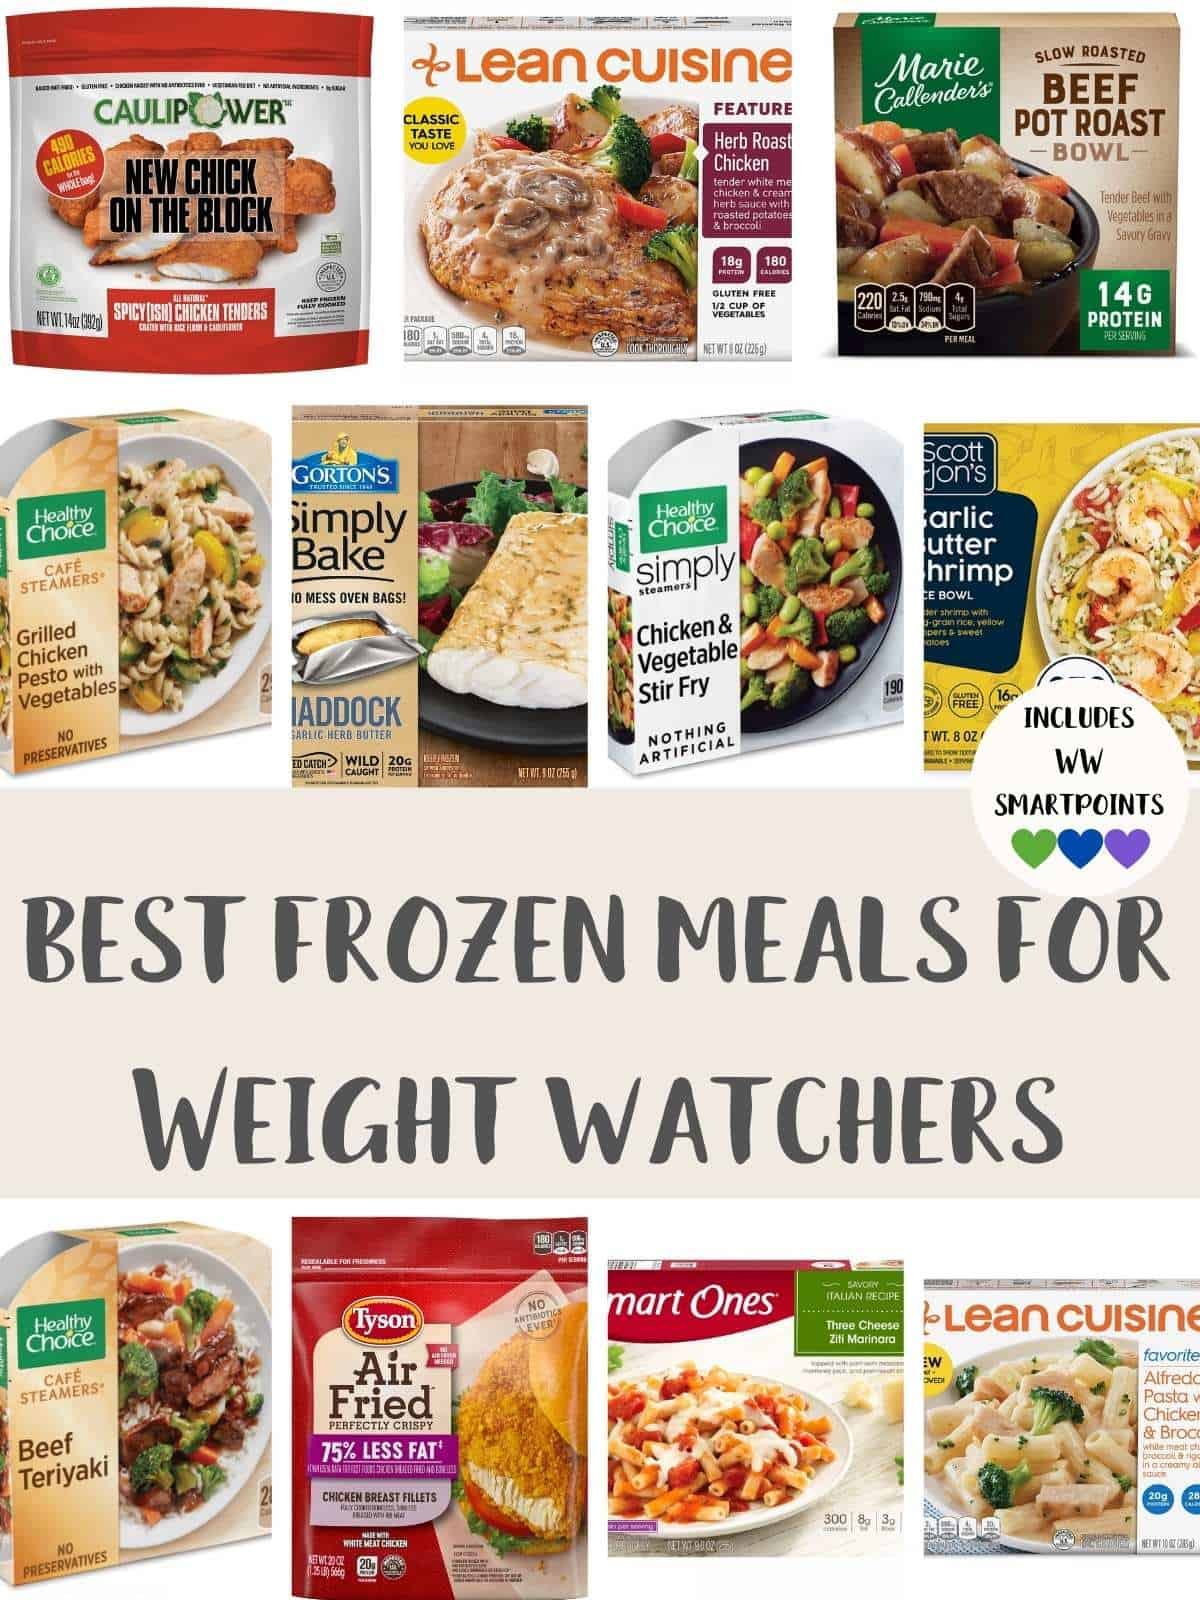 A collage of photos of frozen meals with text overlay stating best frozen meals for Weight Watchers.